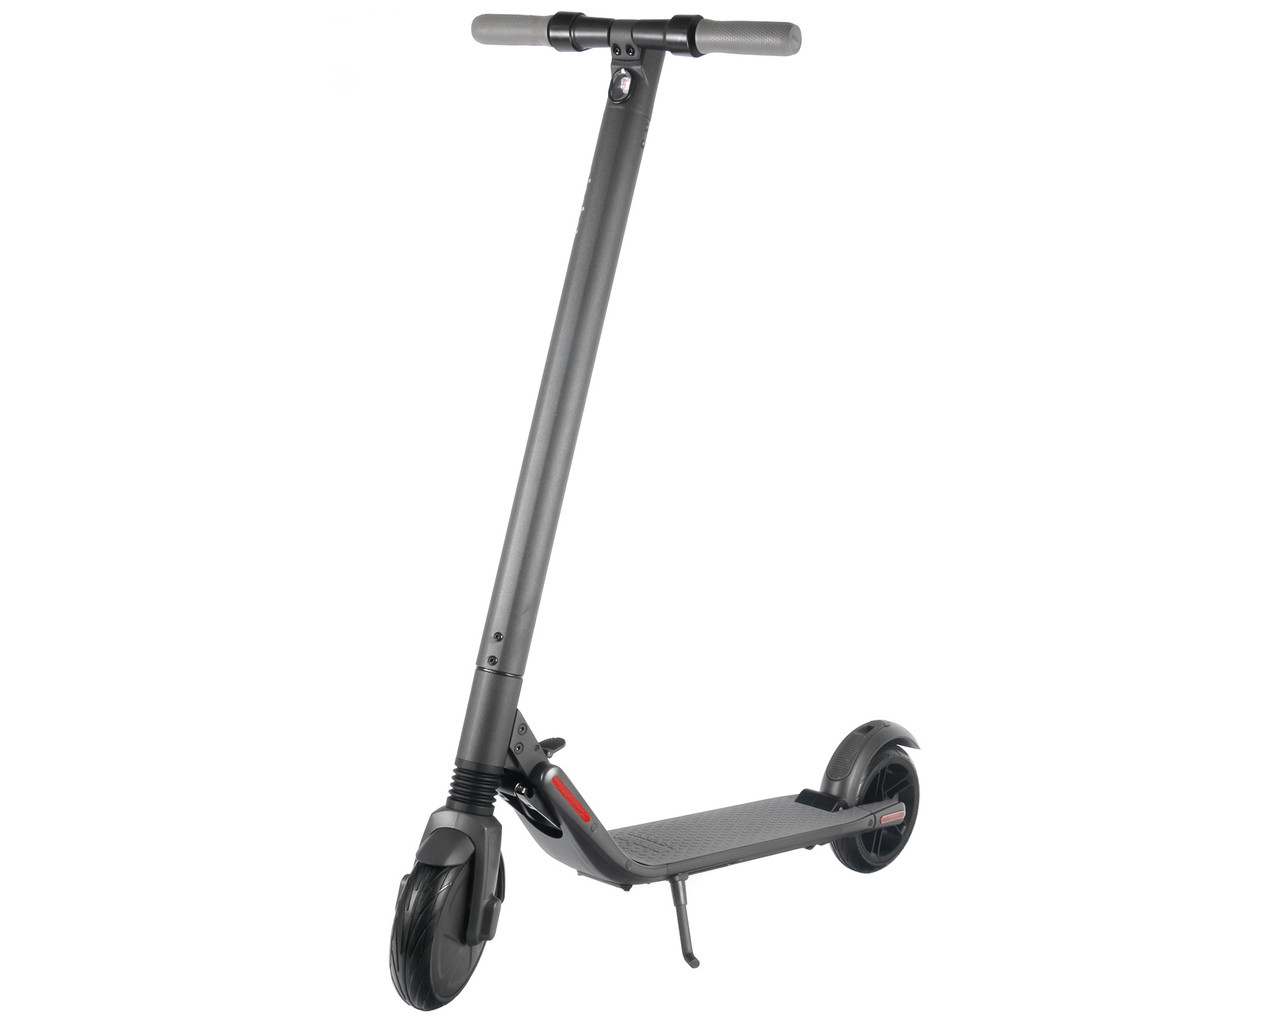 Electric Segway Ninebot Adult Folding Commuter Scooter Es2